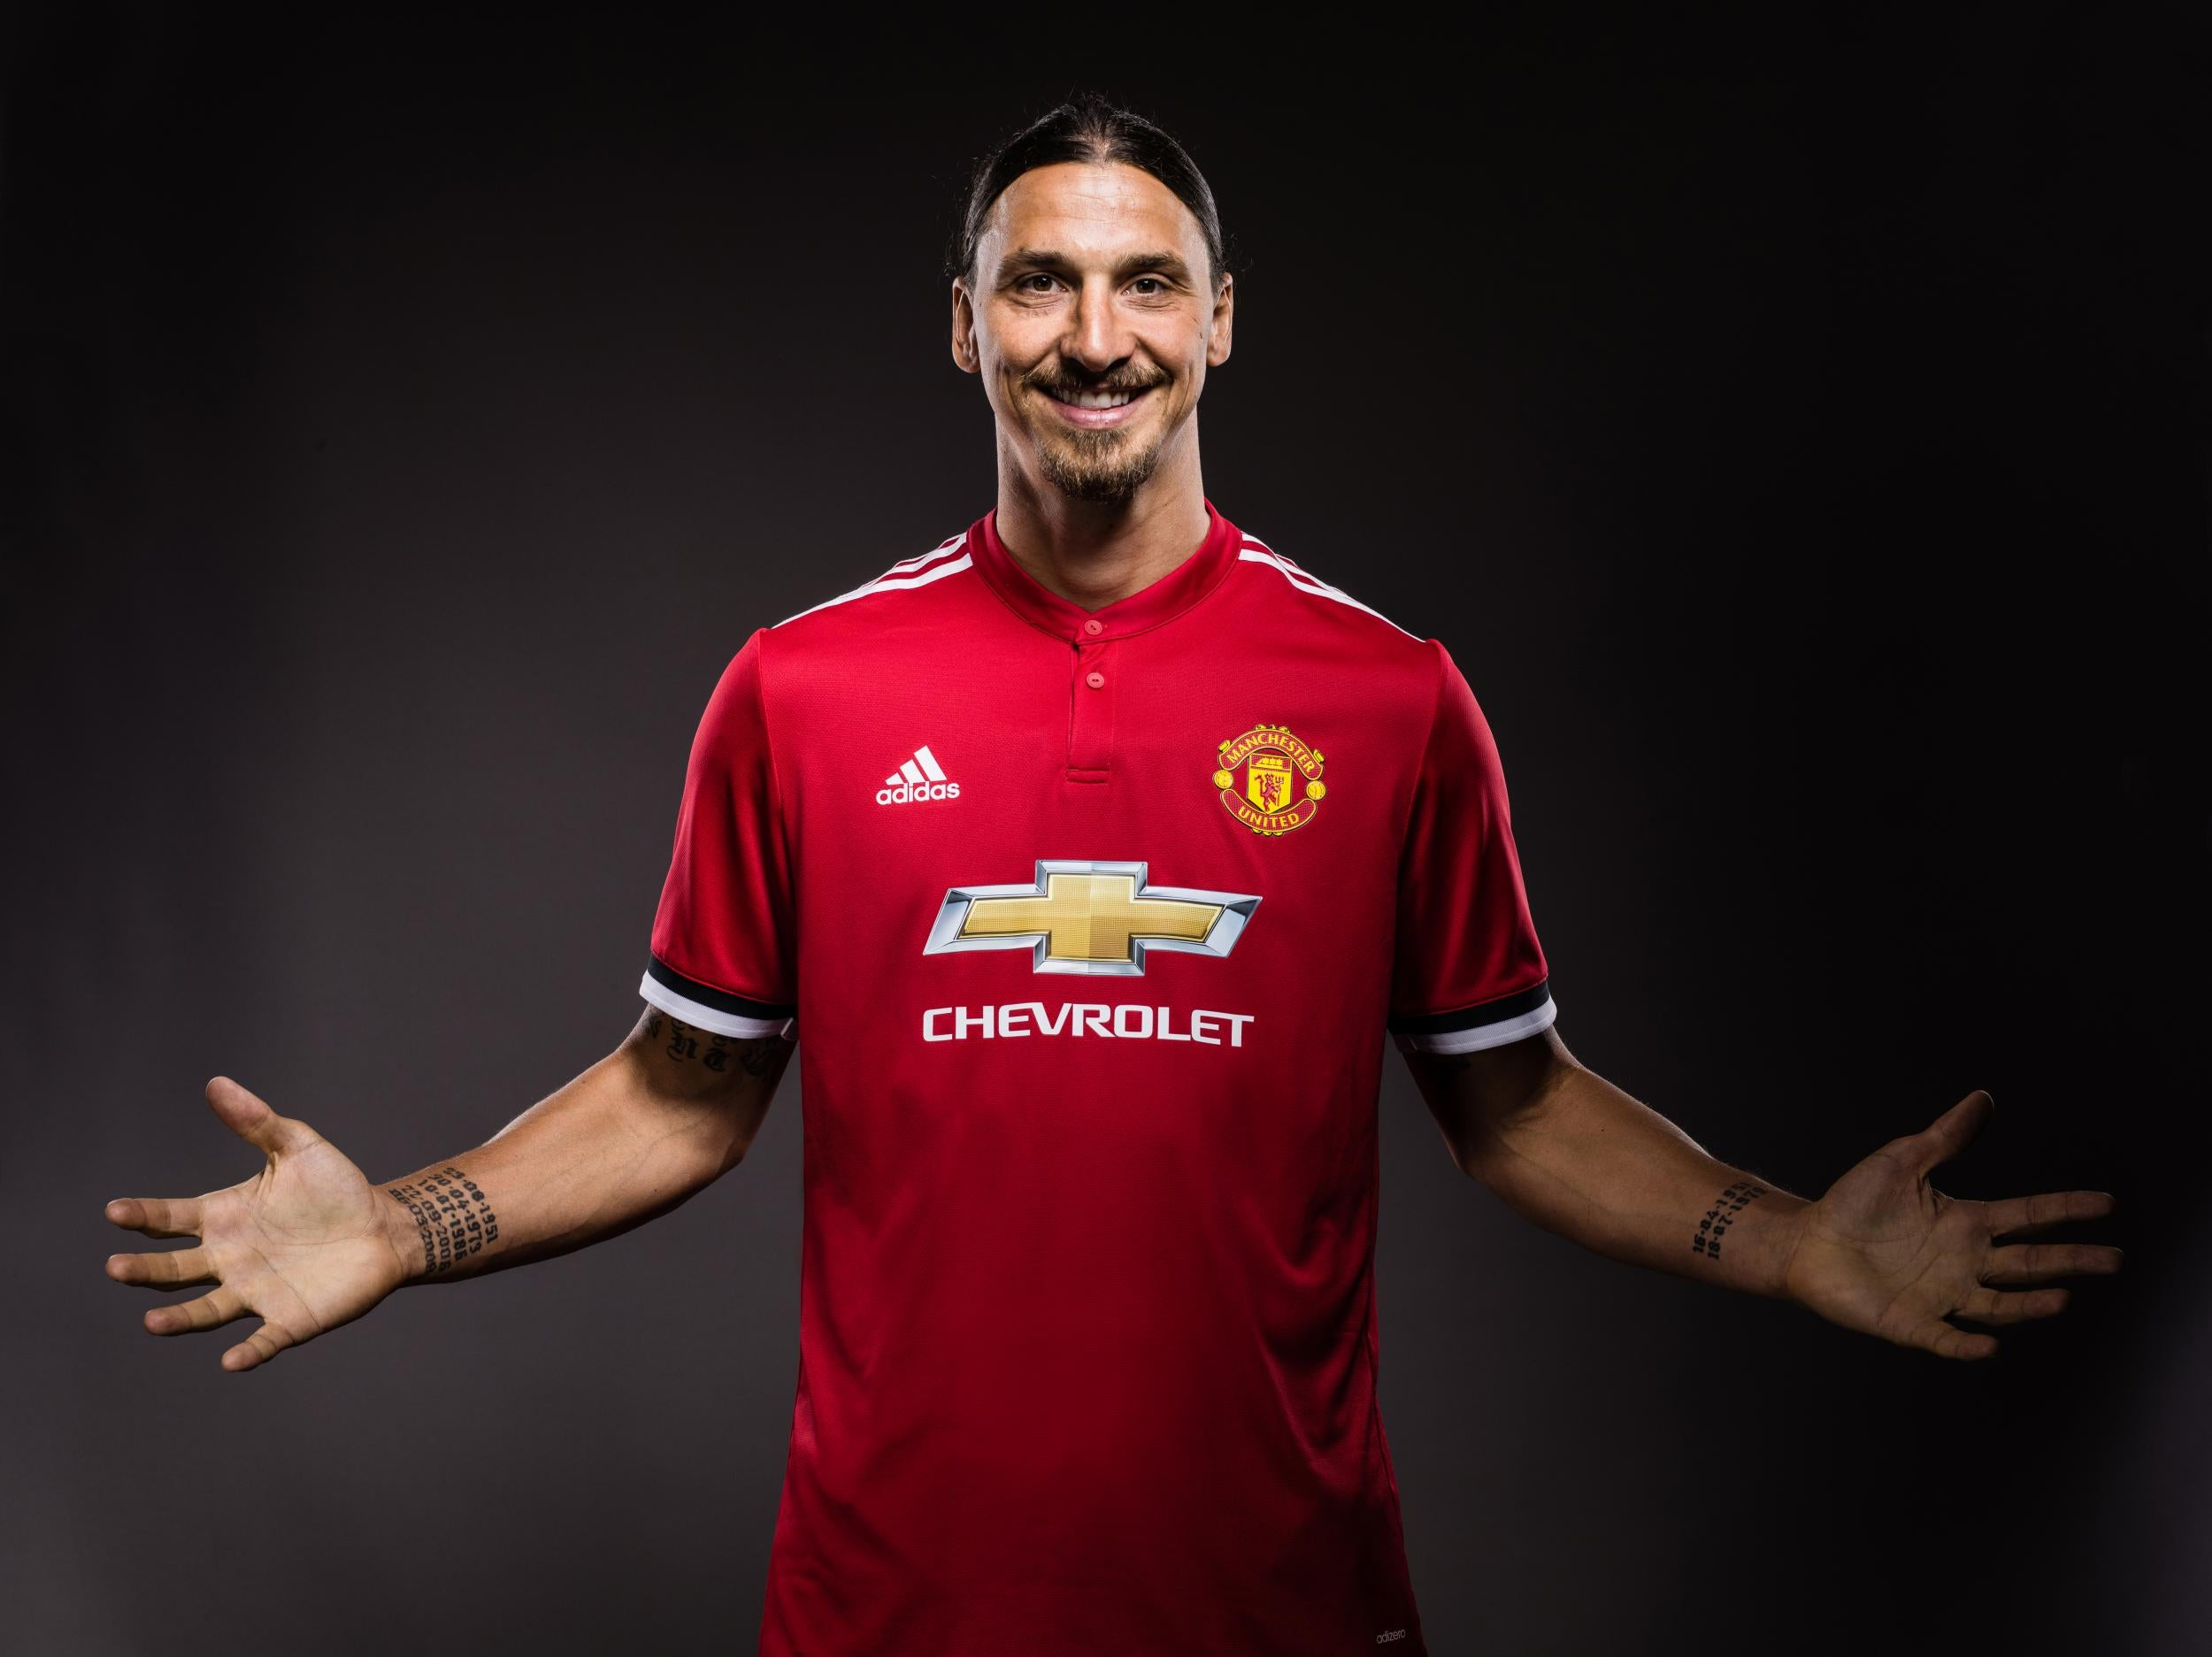 And who is Zlatan Ibrahimovic And where does he play And how does it play A long time playing